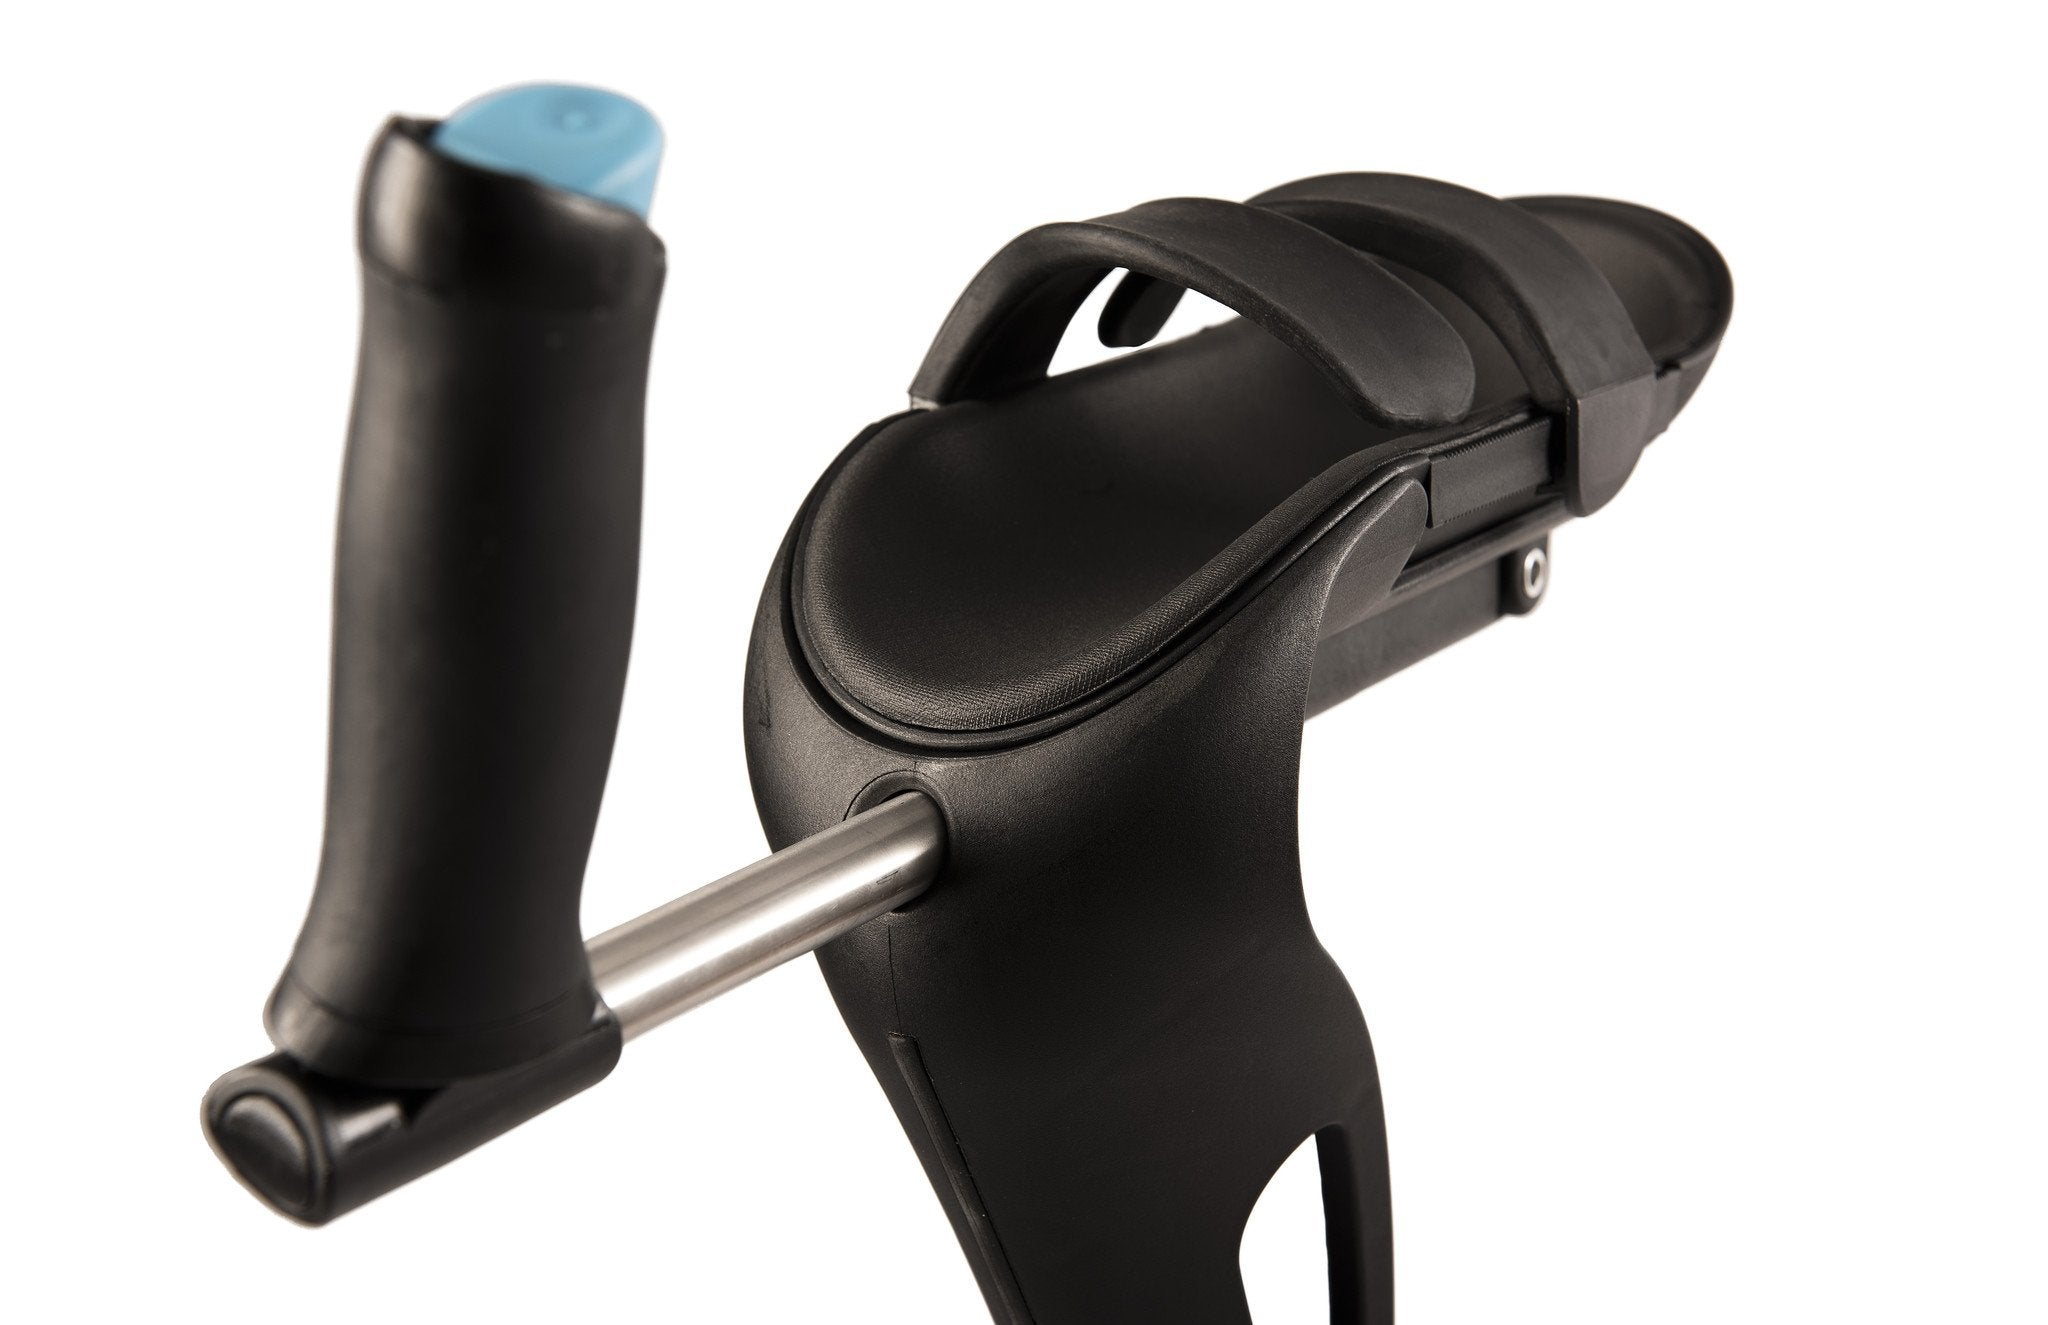 The antimicrobial arm pad of the M+D Crutch cradles the elbow and removes pressure on the armpit, wrist and hand